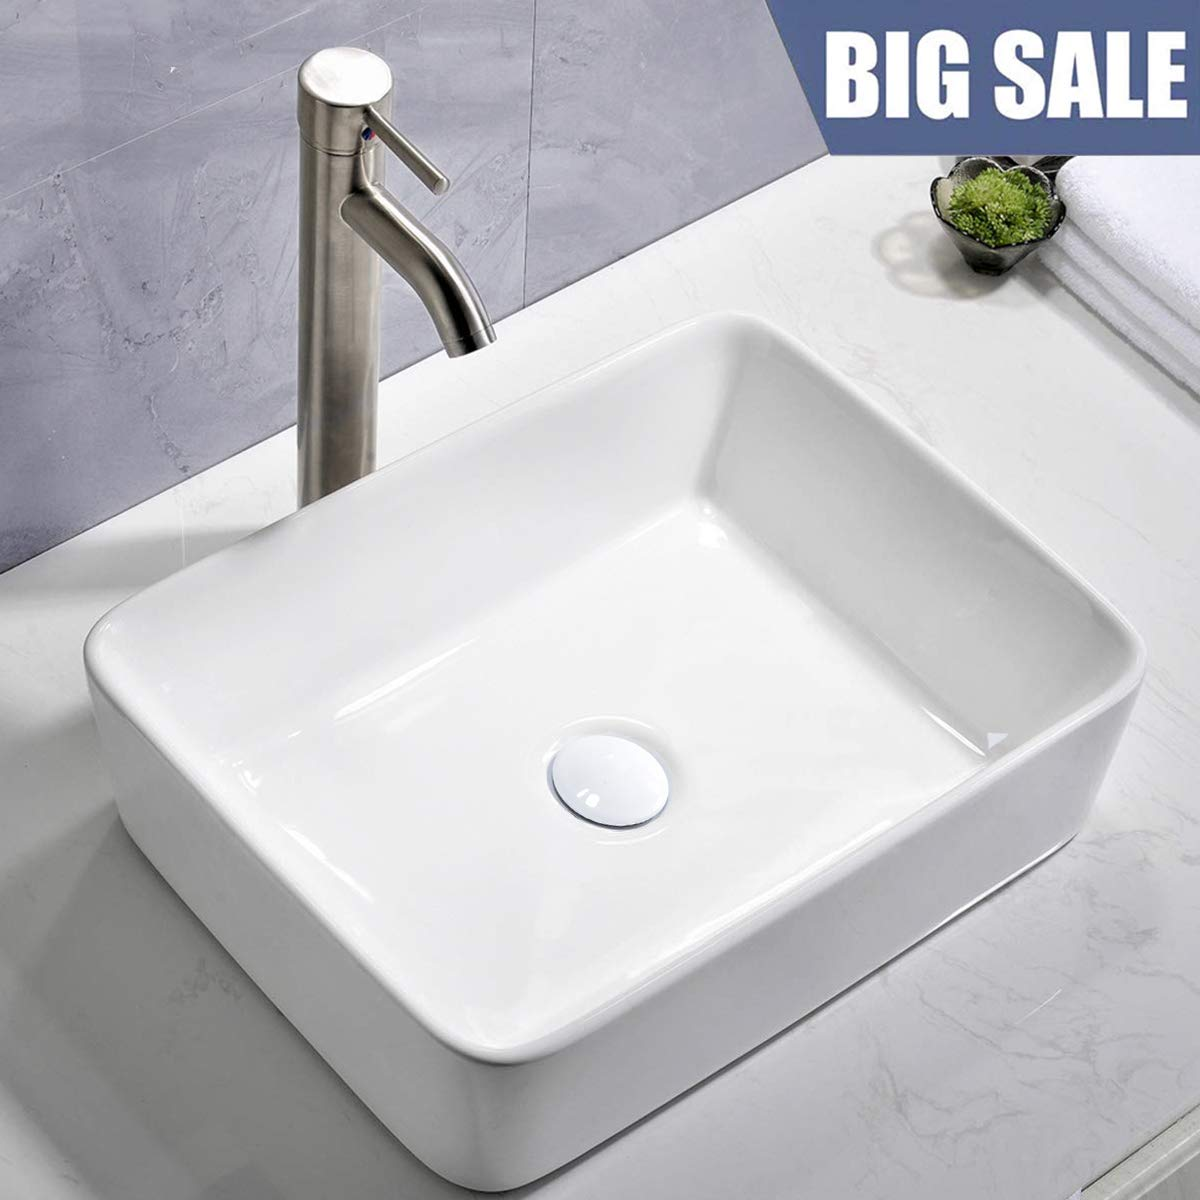 Comllen Counter White Porcelain Ceramic Bathroom Vessel Sink Art Basin